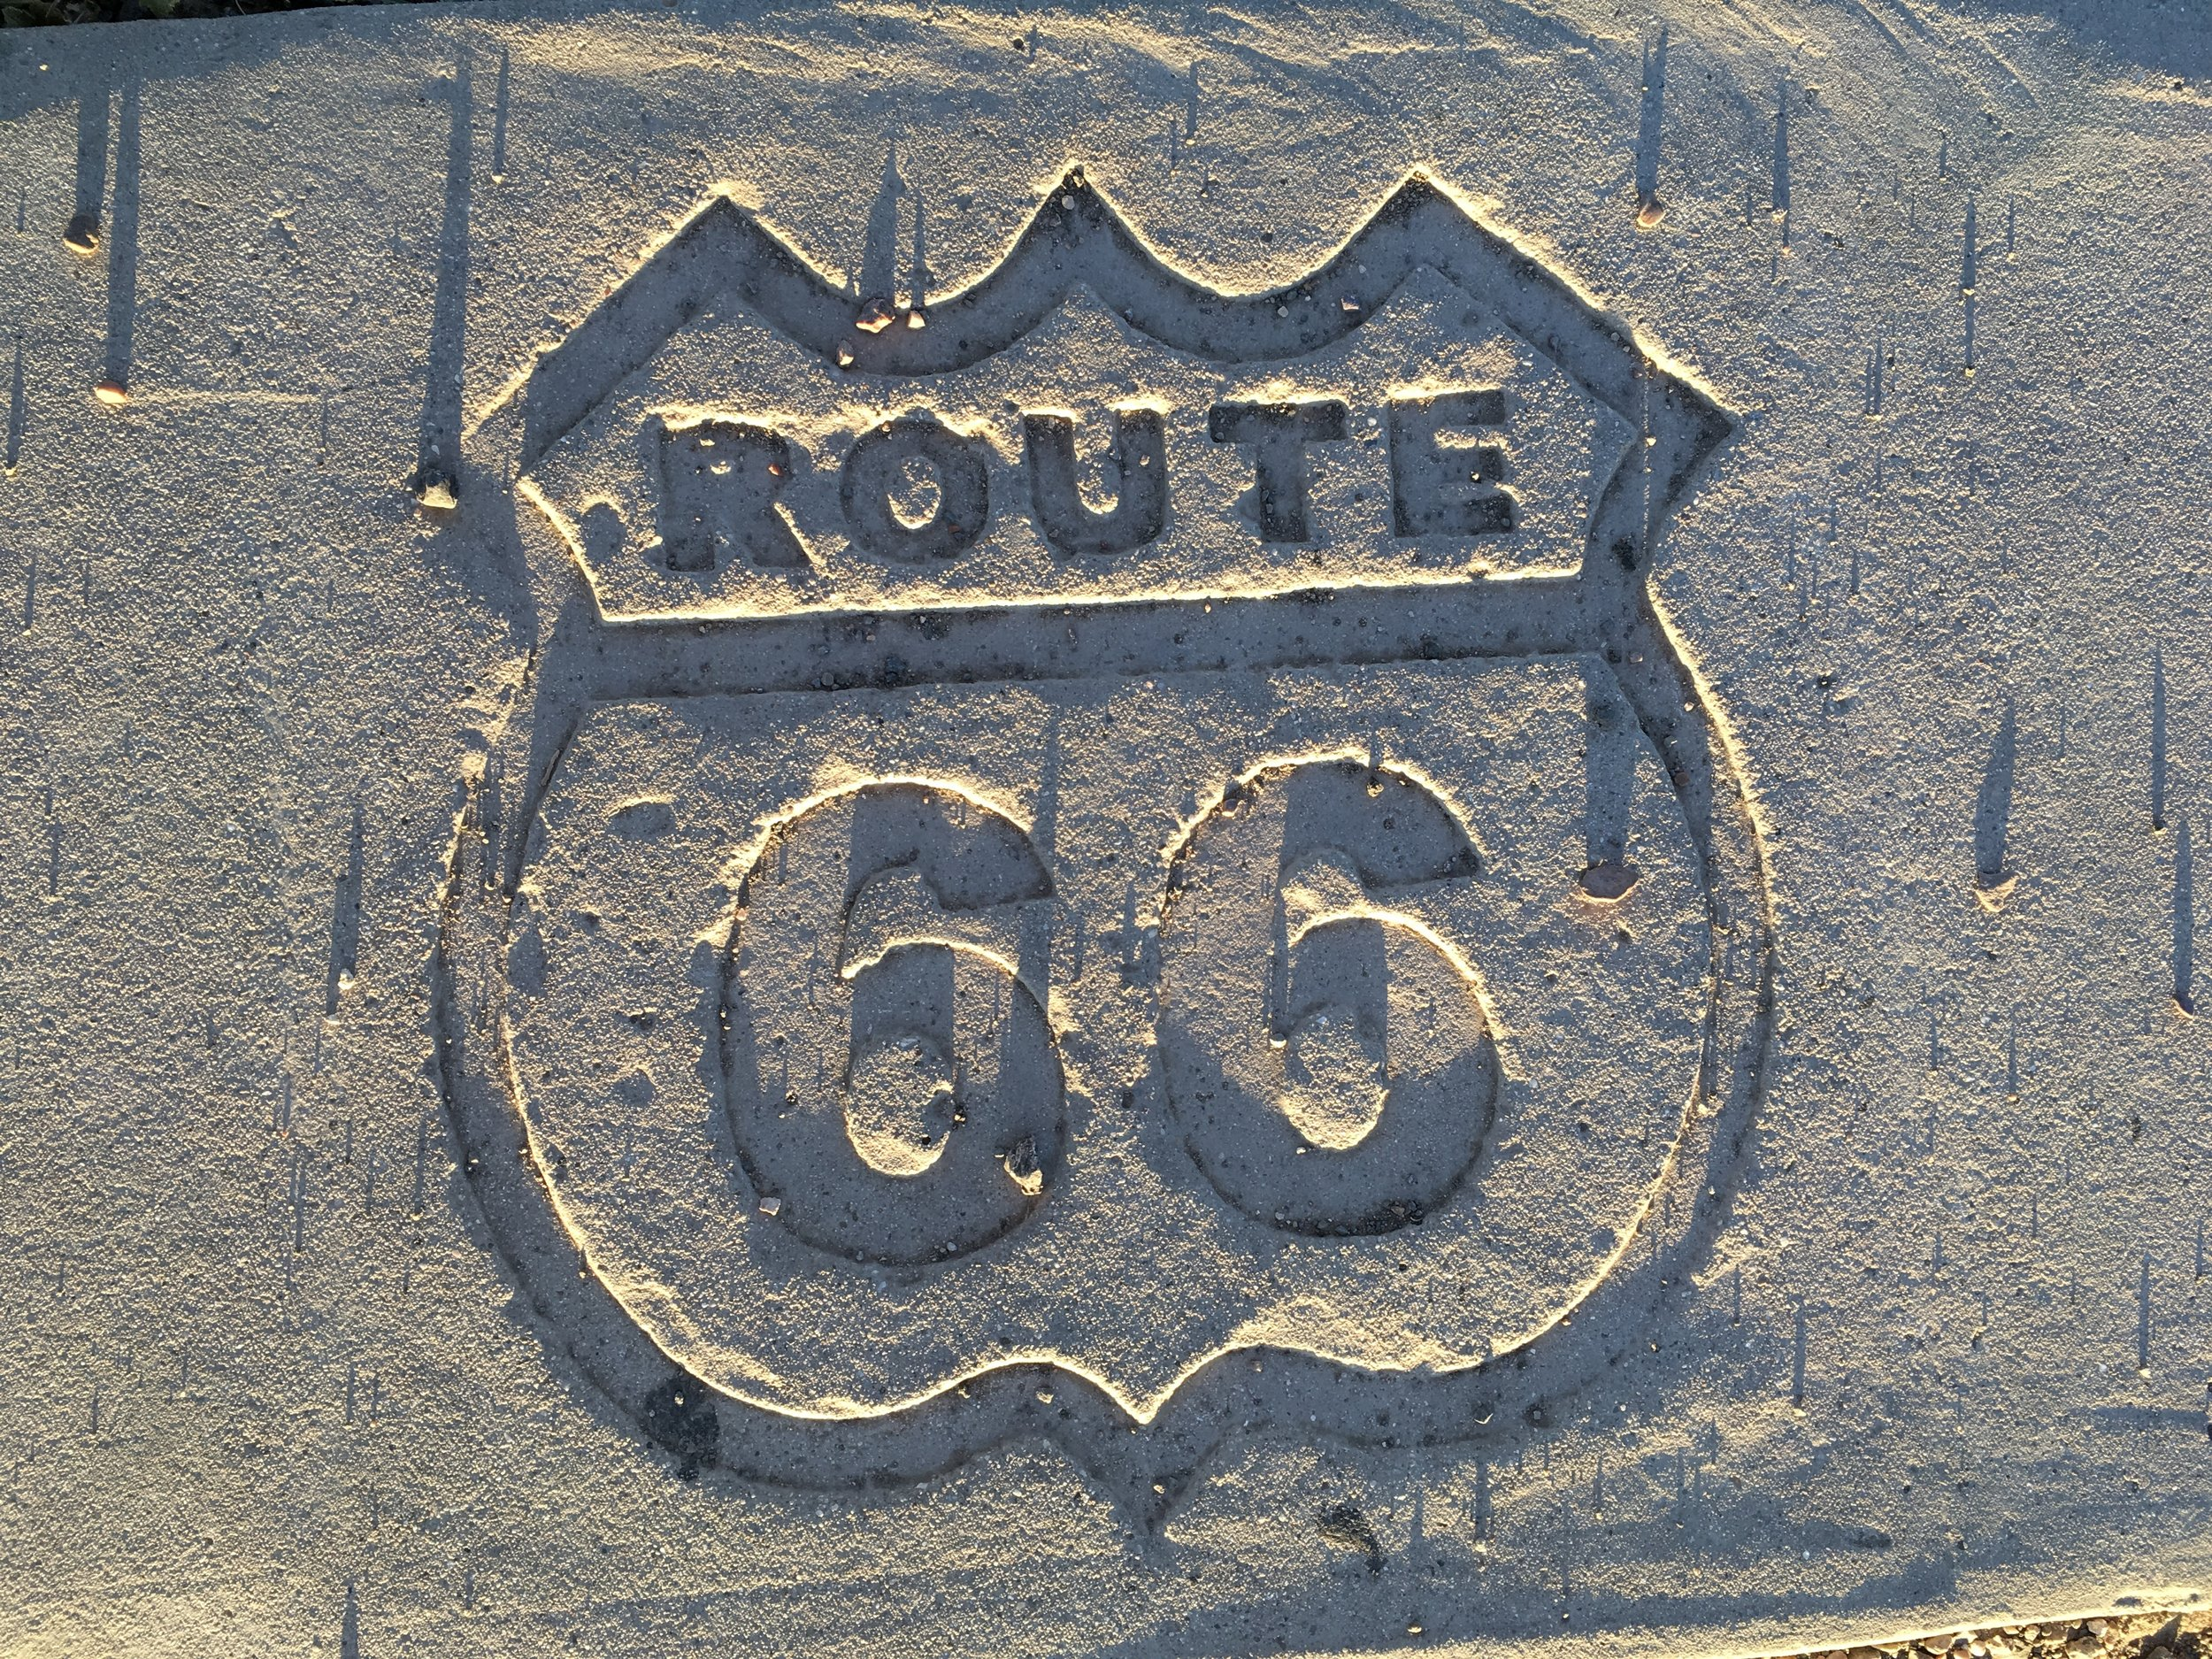 Route 66 Summer Fest - Come have a blast in Nob Hill. July 22nd